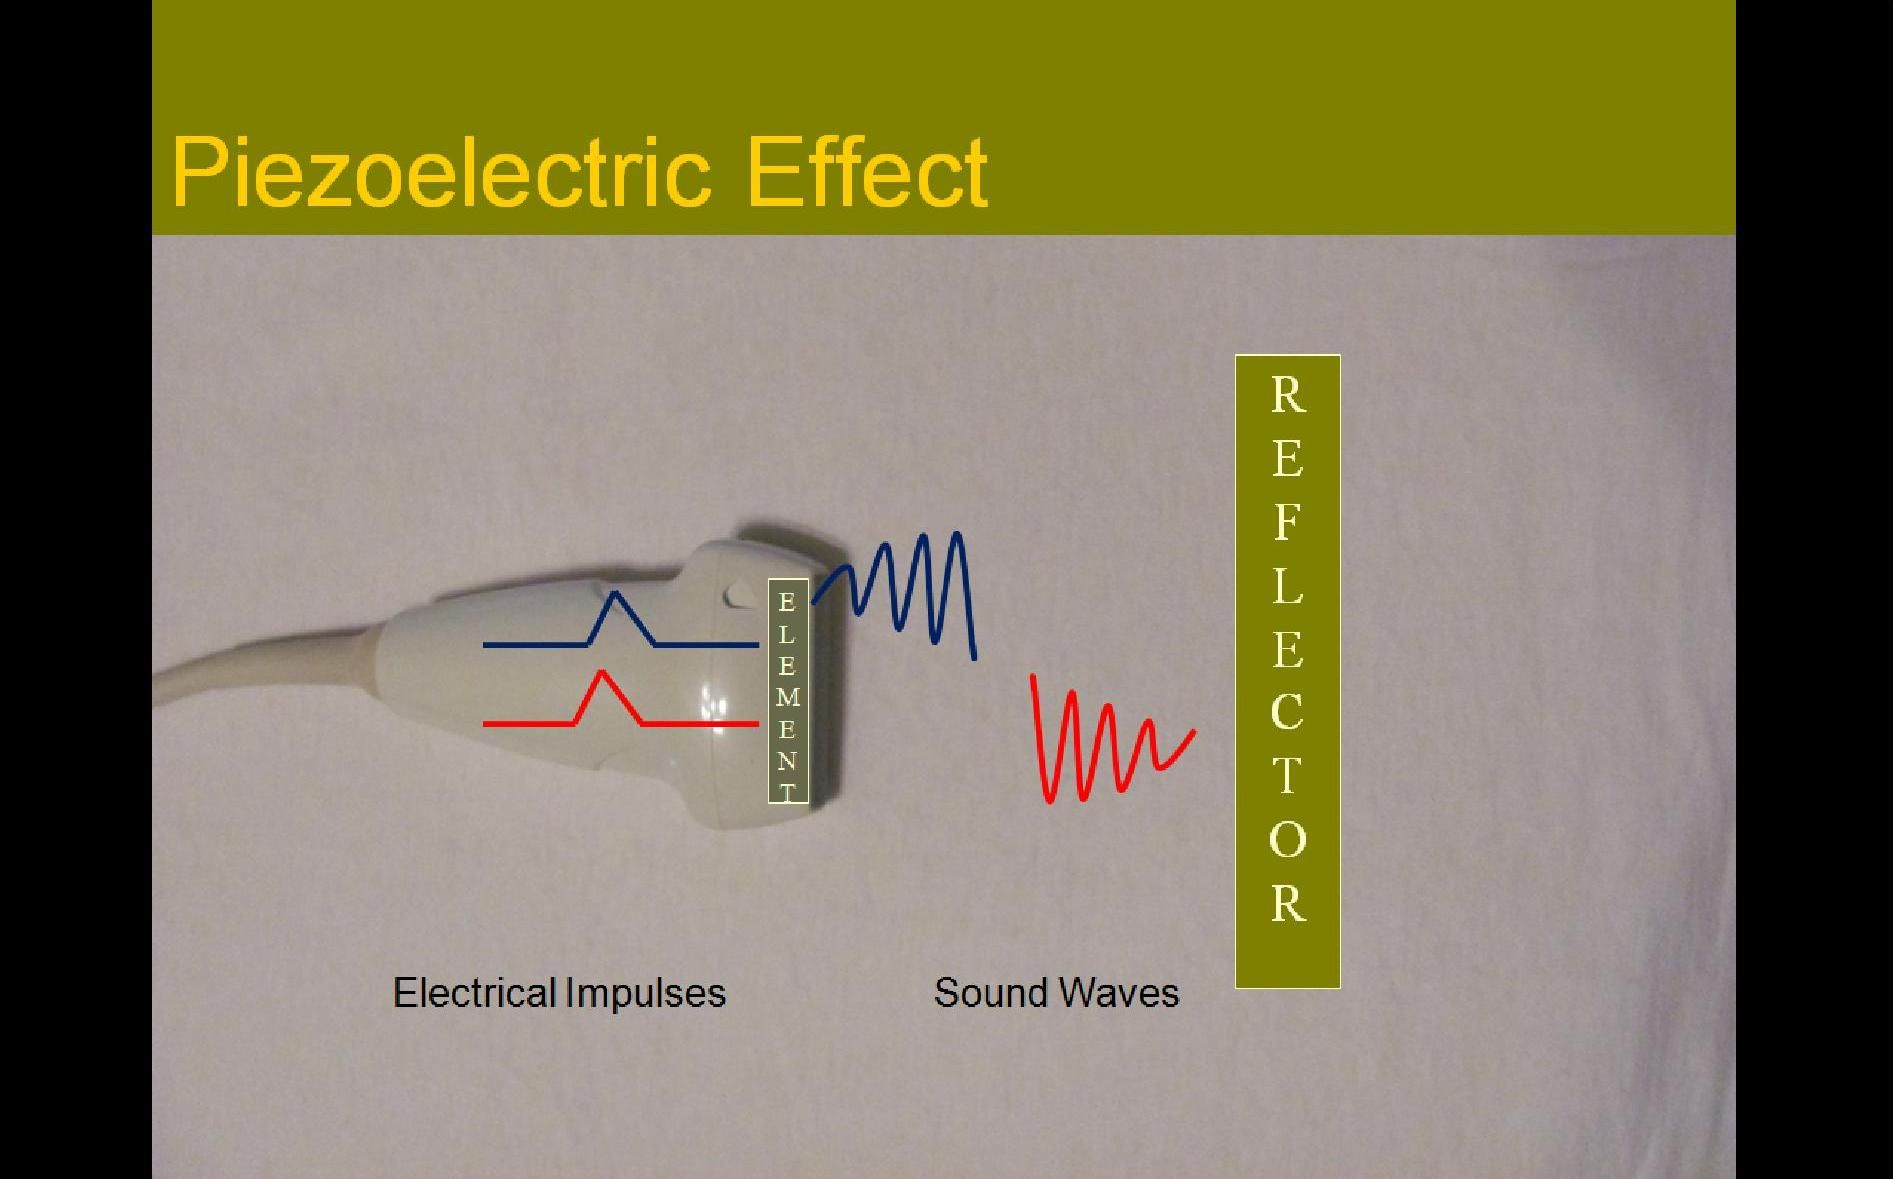 Production Of Sound Waves Great Study Guide Covering Lots